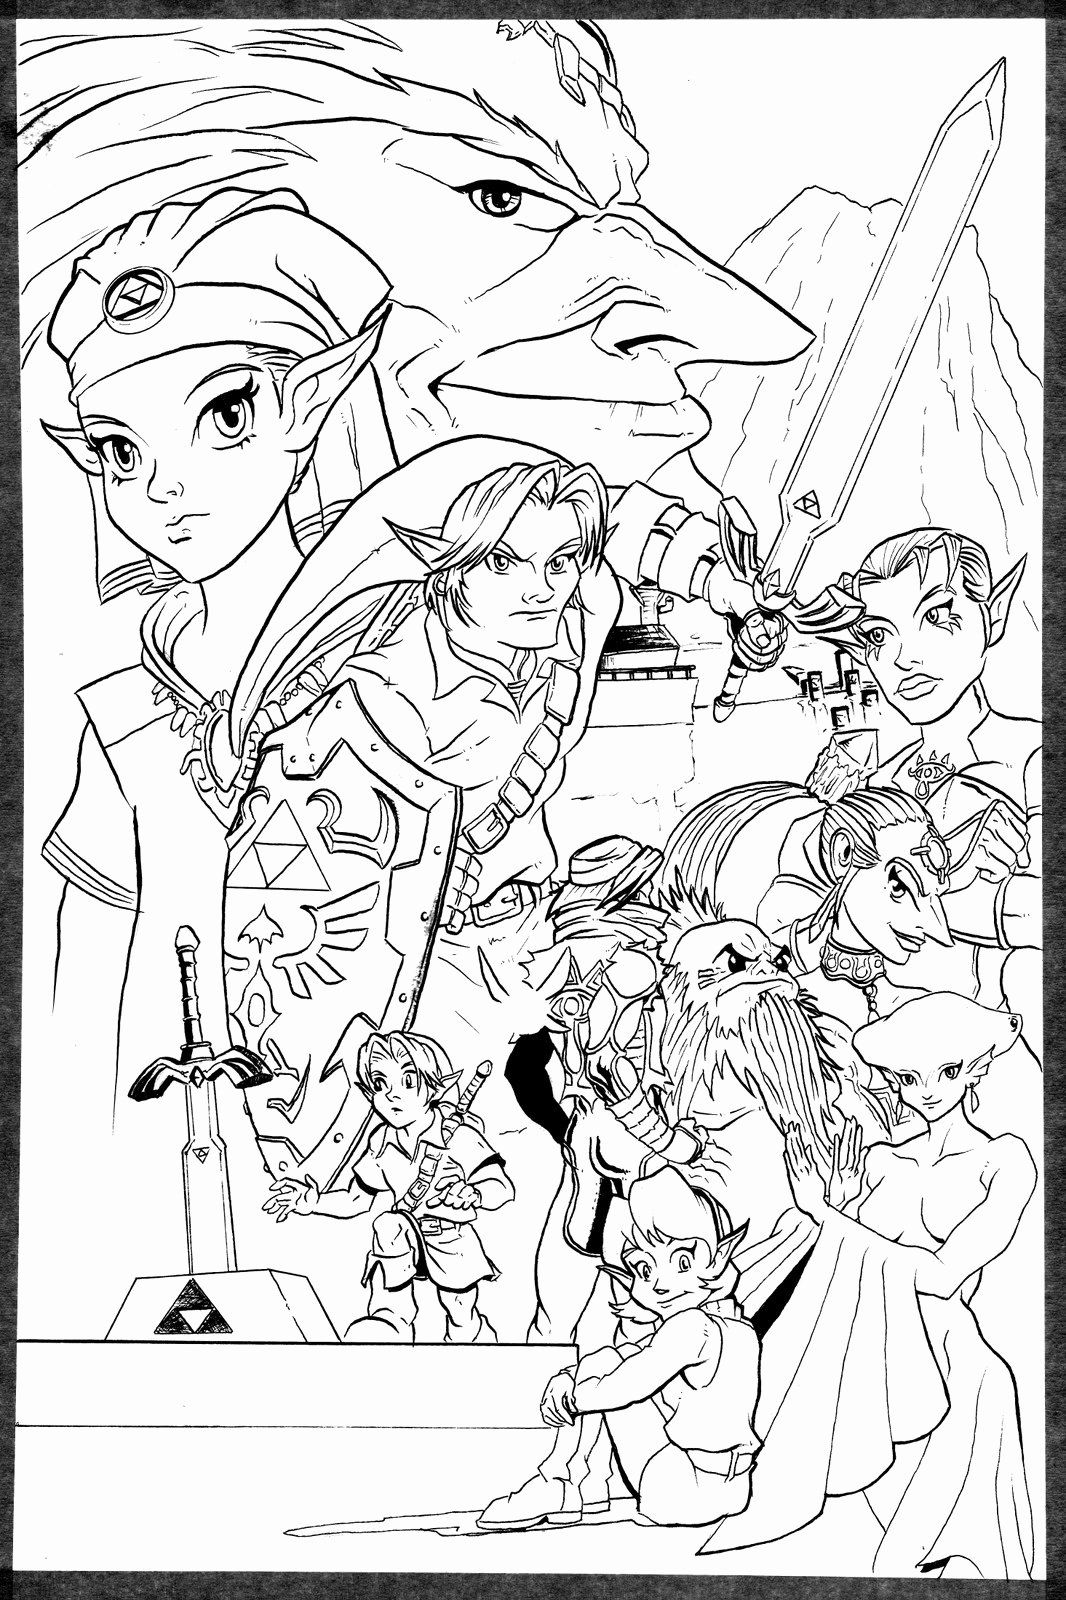 Legend Of Zelda Coloring Book Beautiful Adam B Carabet The Legend Of Zelda Ocarina Of Time Hello Kitty Colouring Pages Mermaid Coloring Book Cat Coloring Book